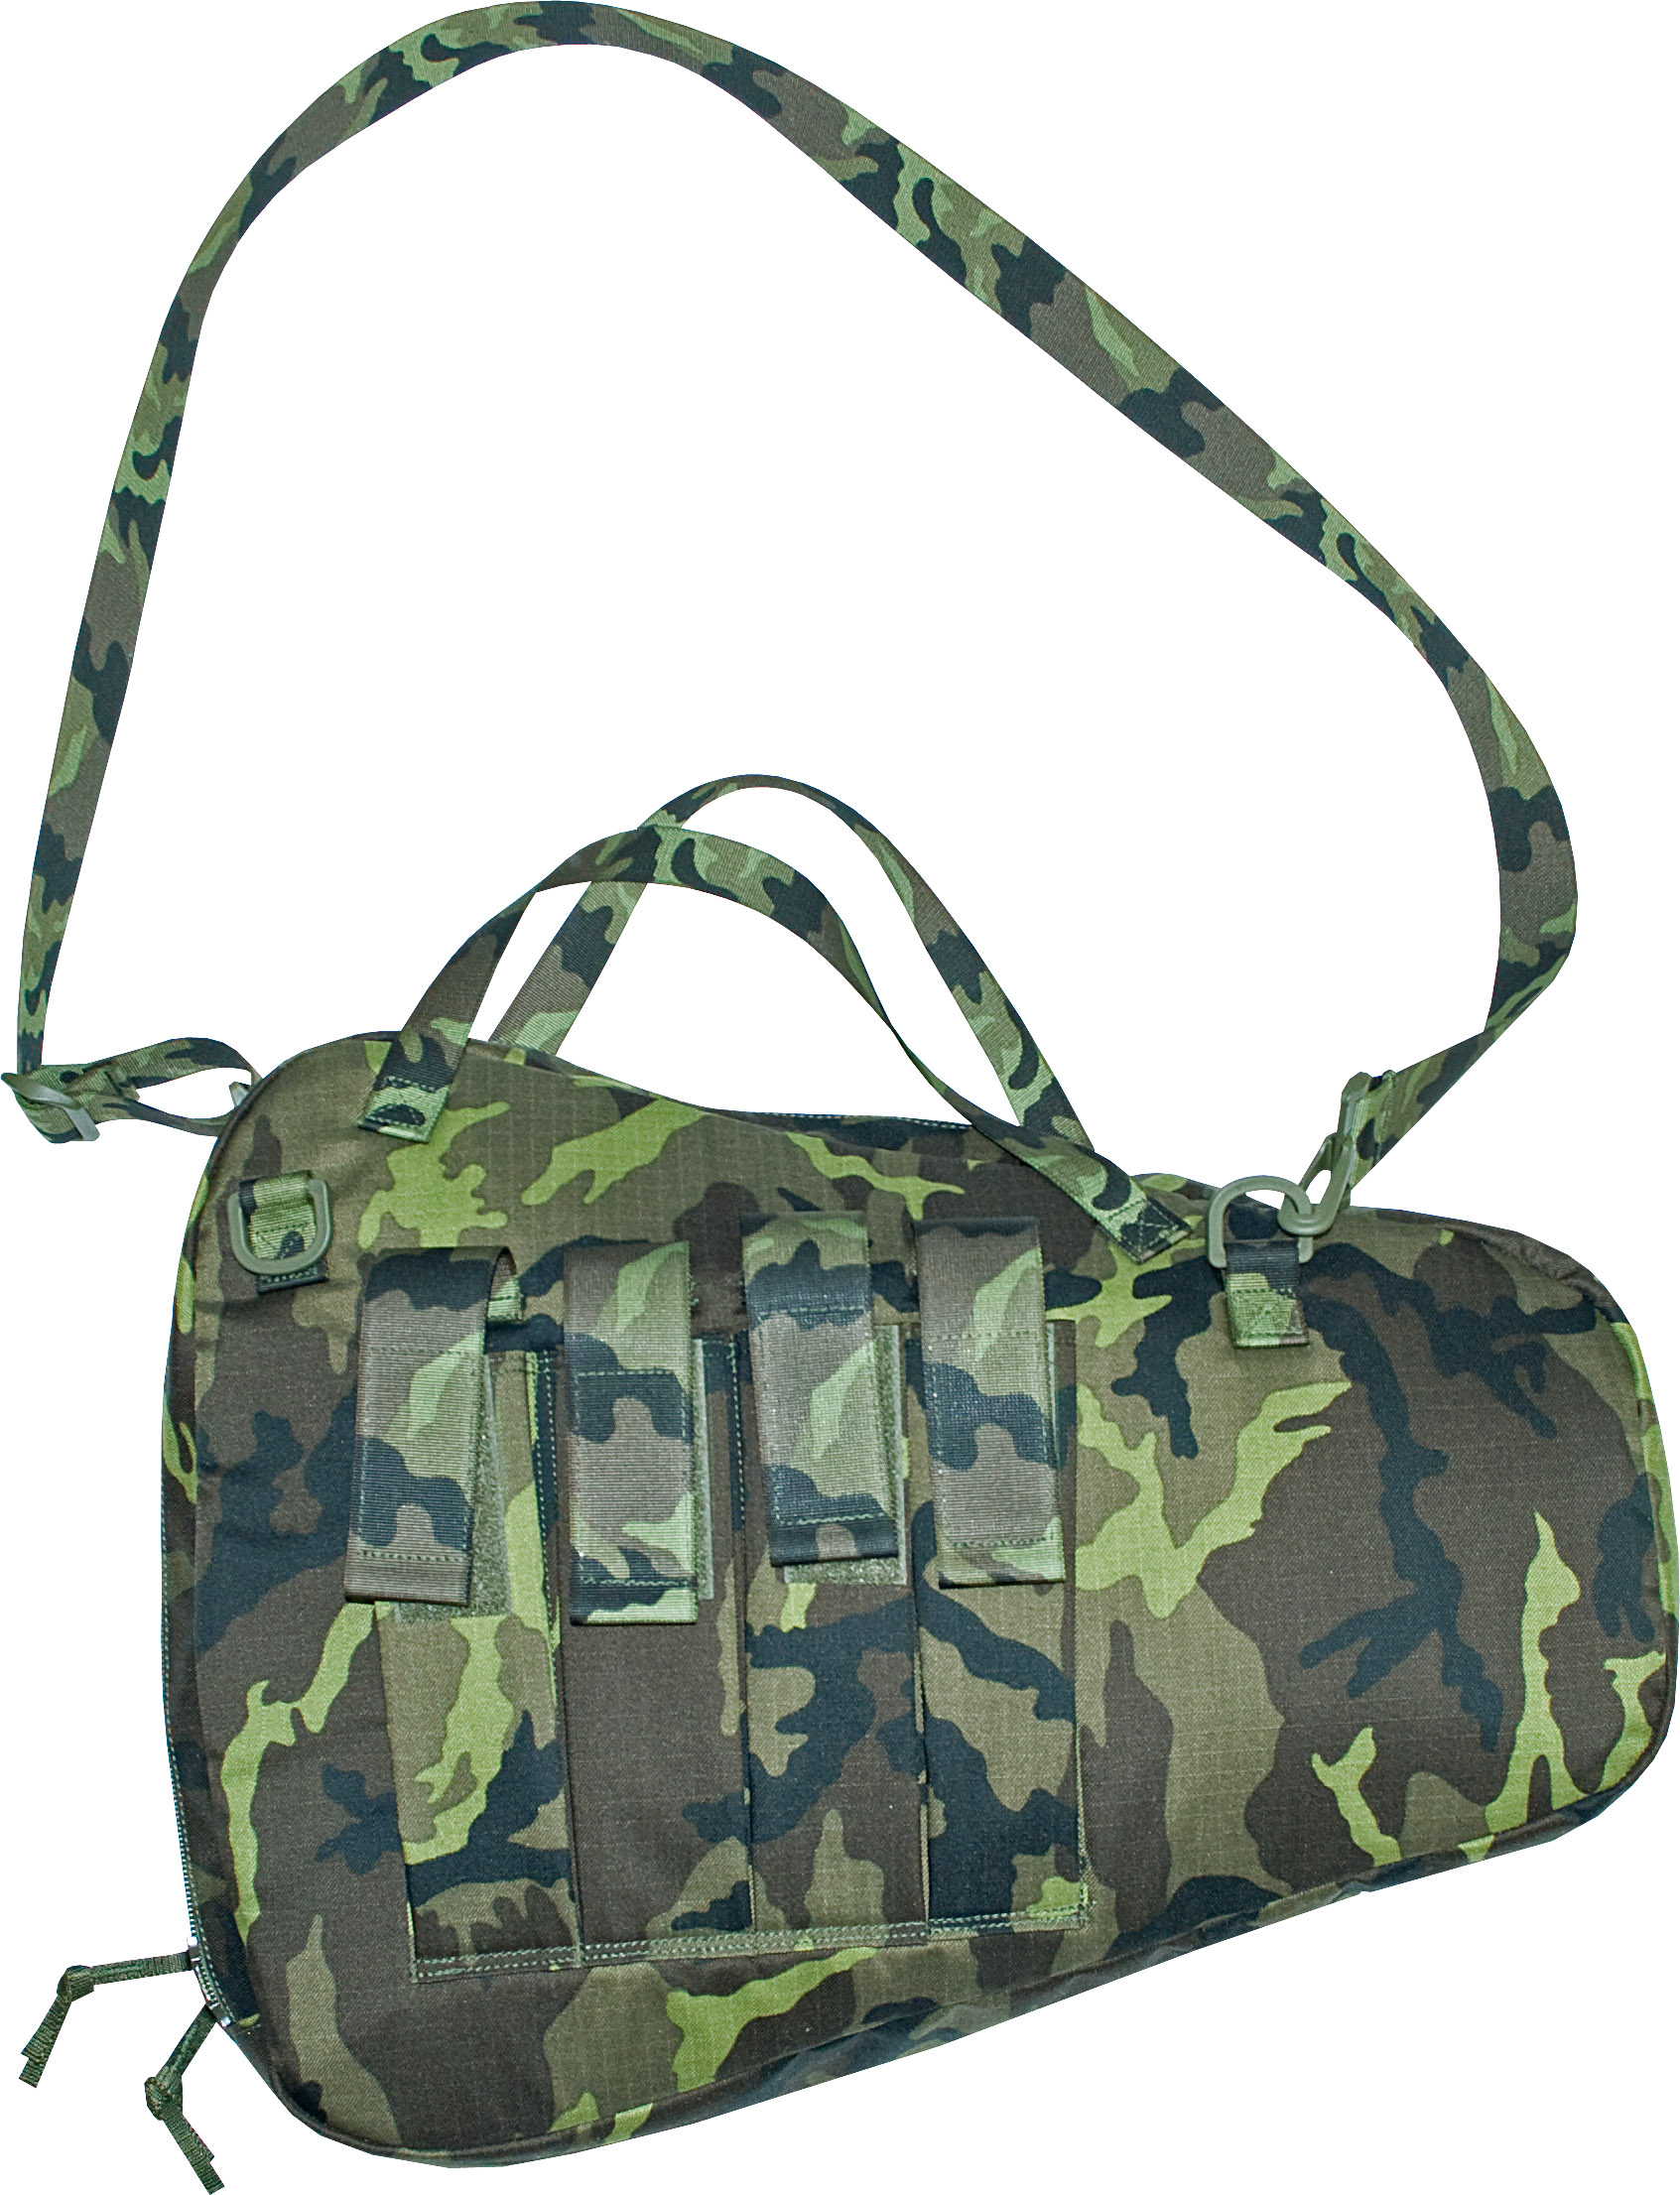 CZ Scorpion Evo 3 Tactical Transport Bag - M95 Camo